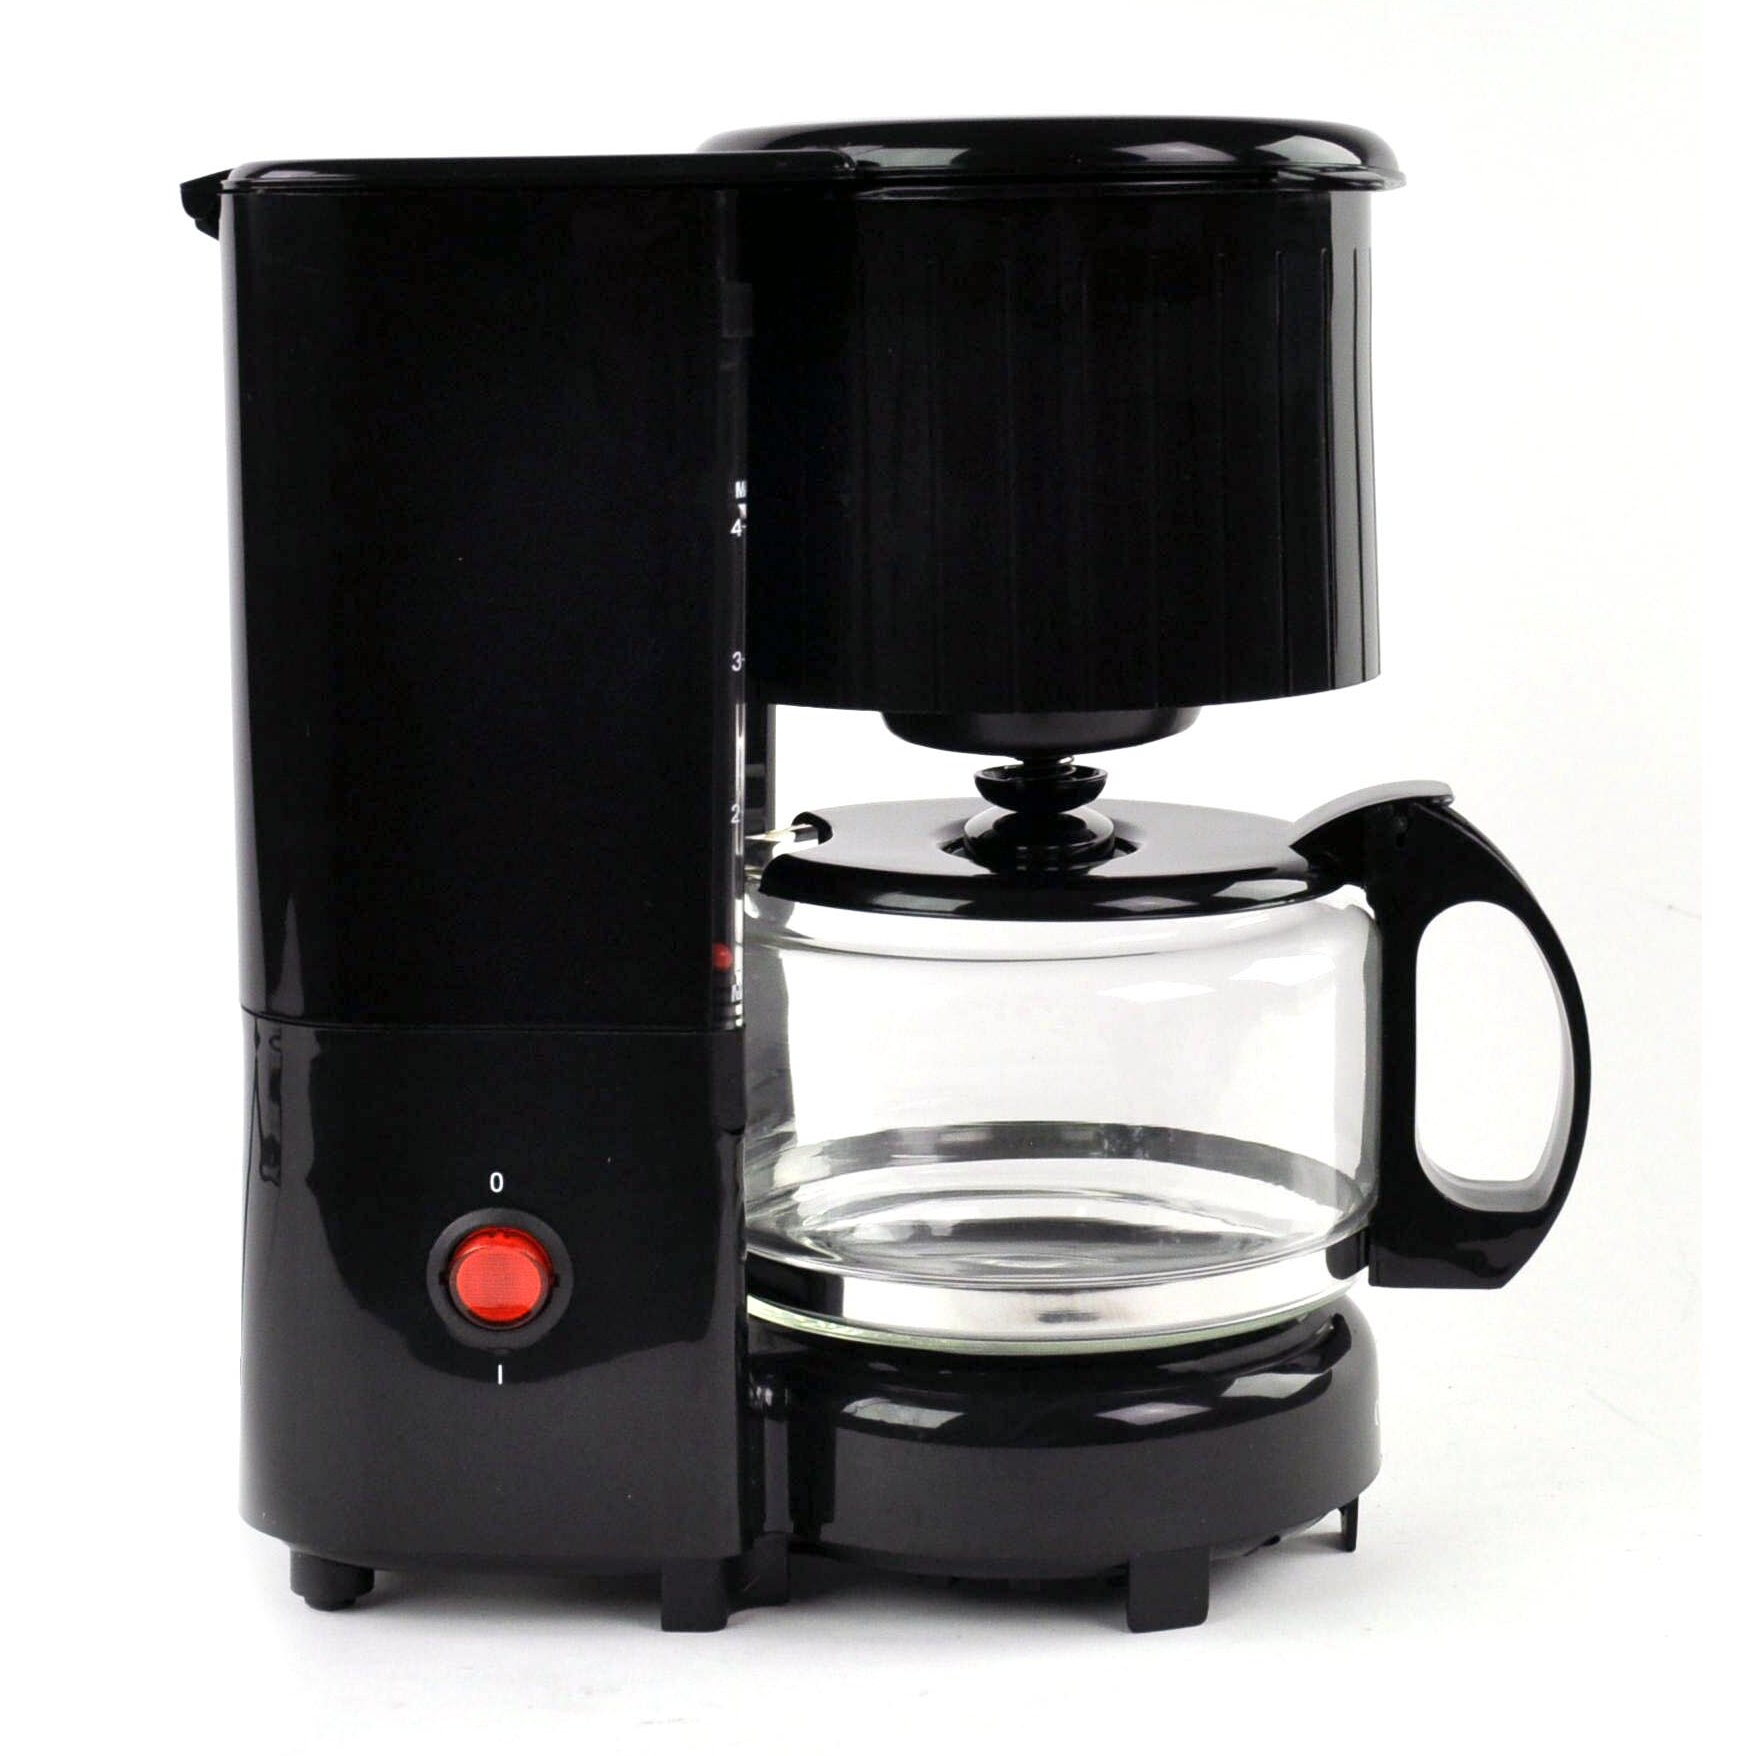 Coffee Maker Reviews 4 Cup : Cookinex 4 Cup Anti-Drip Coffee Maker & Reviews Wayfair